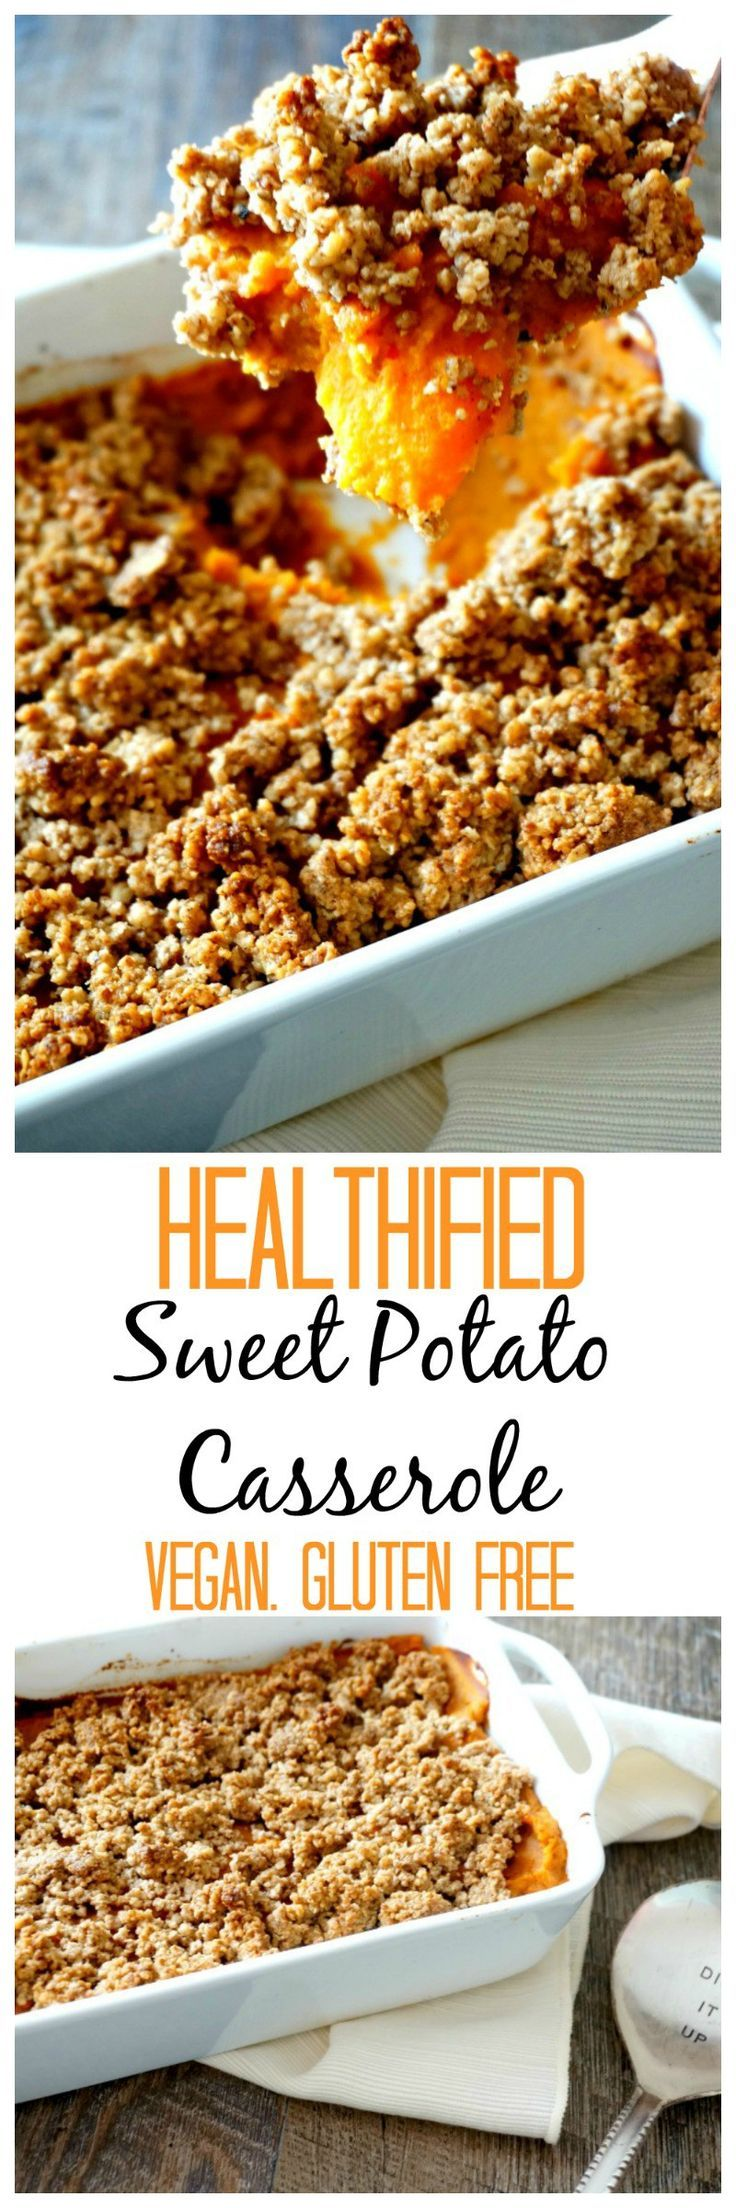 Healthified Sweet Potato Casserole: A lightened up, naturally sweetened version of sweet potato casserole.. Vegan. Gluten Free.